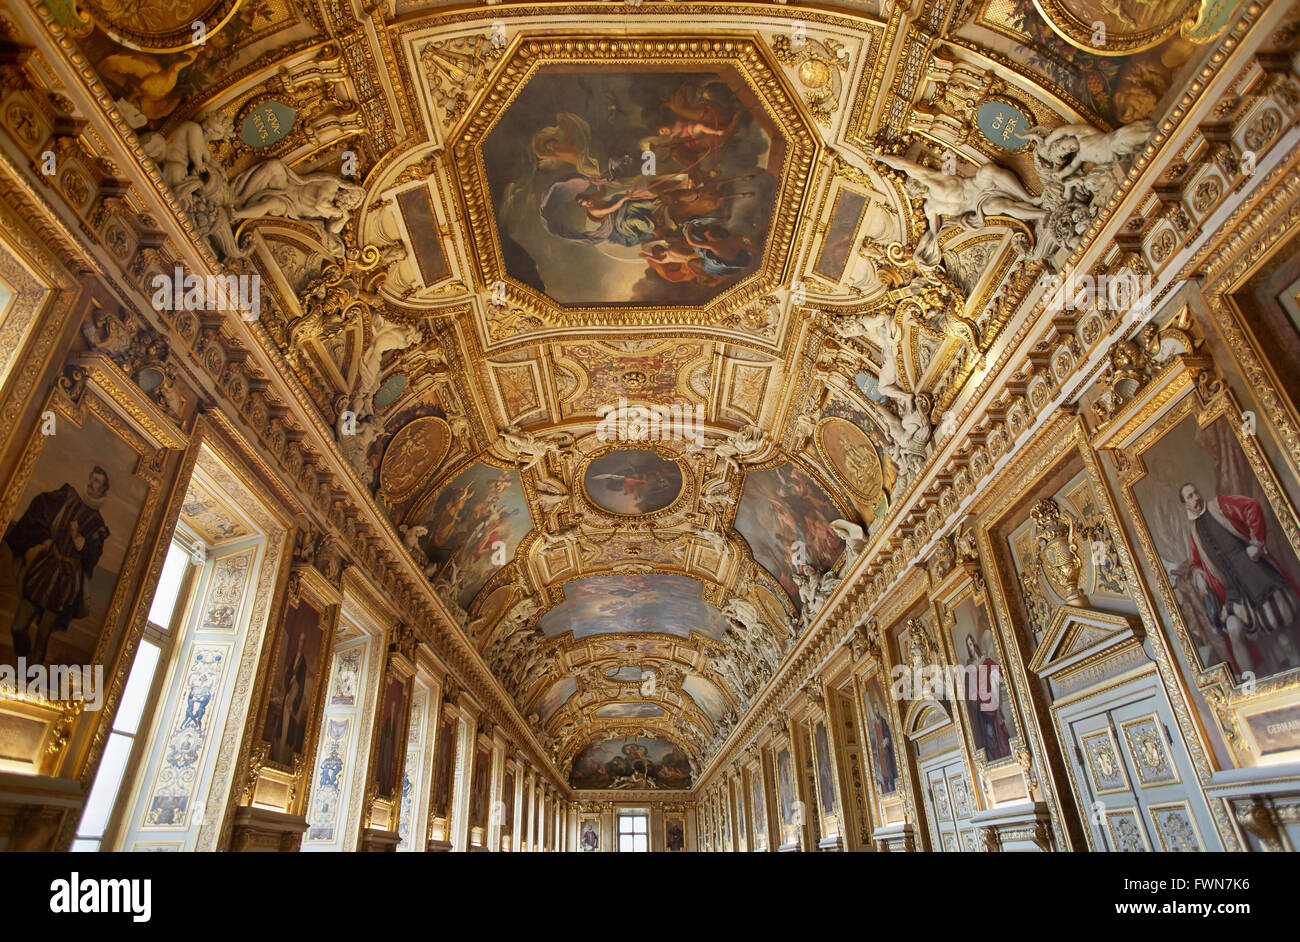 Louvre museum, Apollo gallery ceiling in Paris - Stock Image